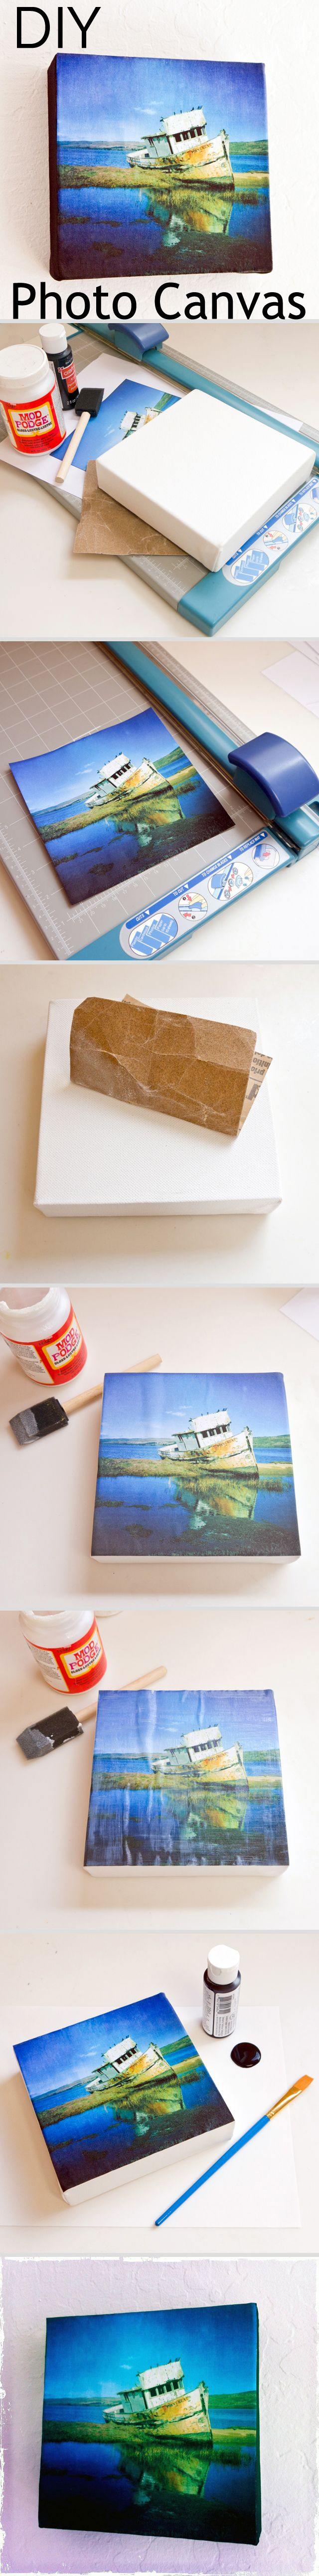 Make your own photo canvas prints